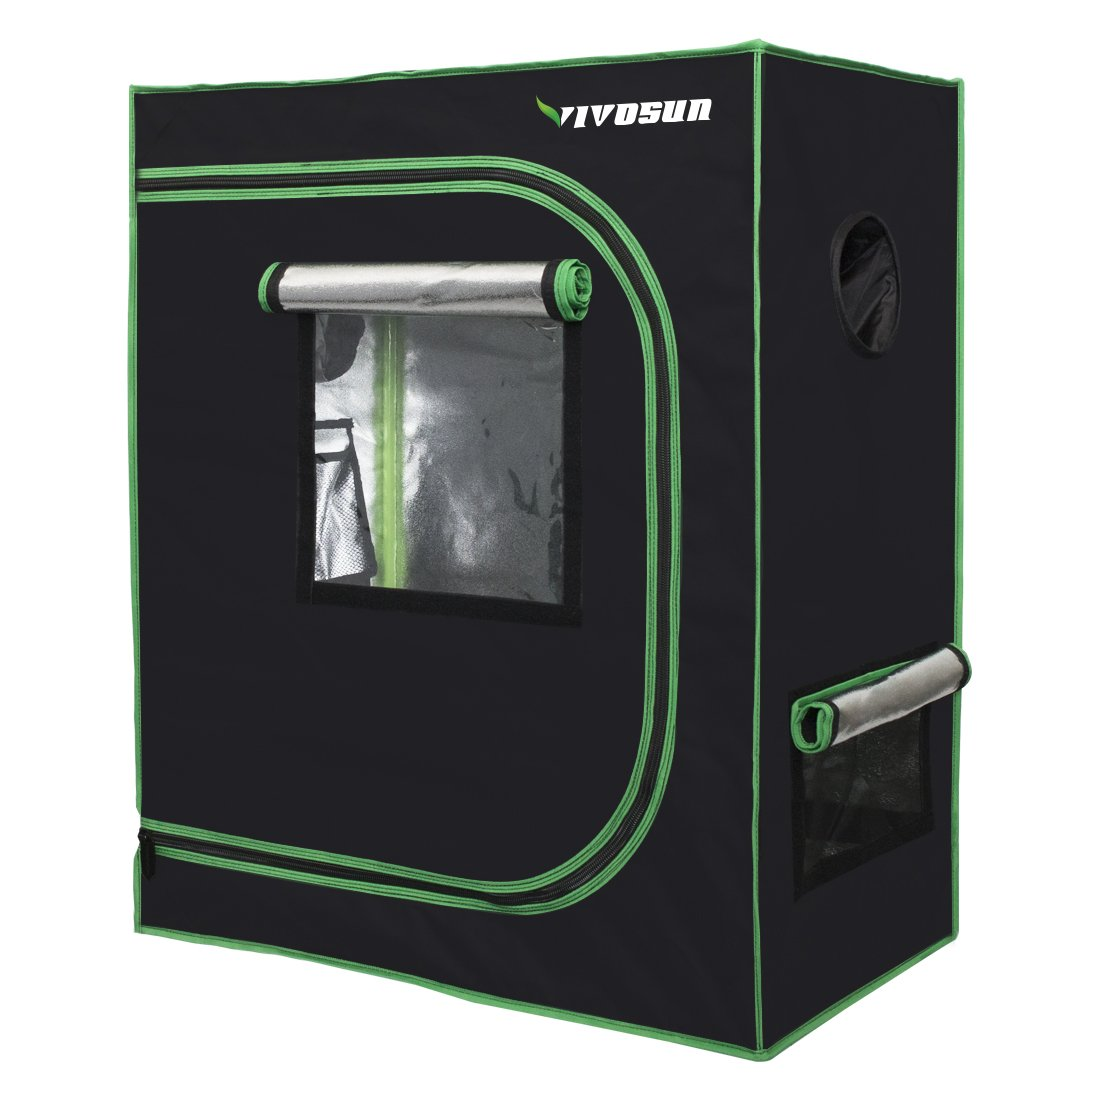 """VIVOSUN 30""""x18""""x36"""" Mylar Hydroponic Grow Tent with Observation Window and Floor Tray for Indoor Plant Growing"""